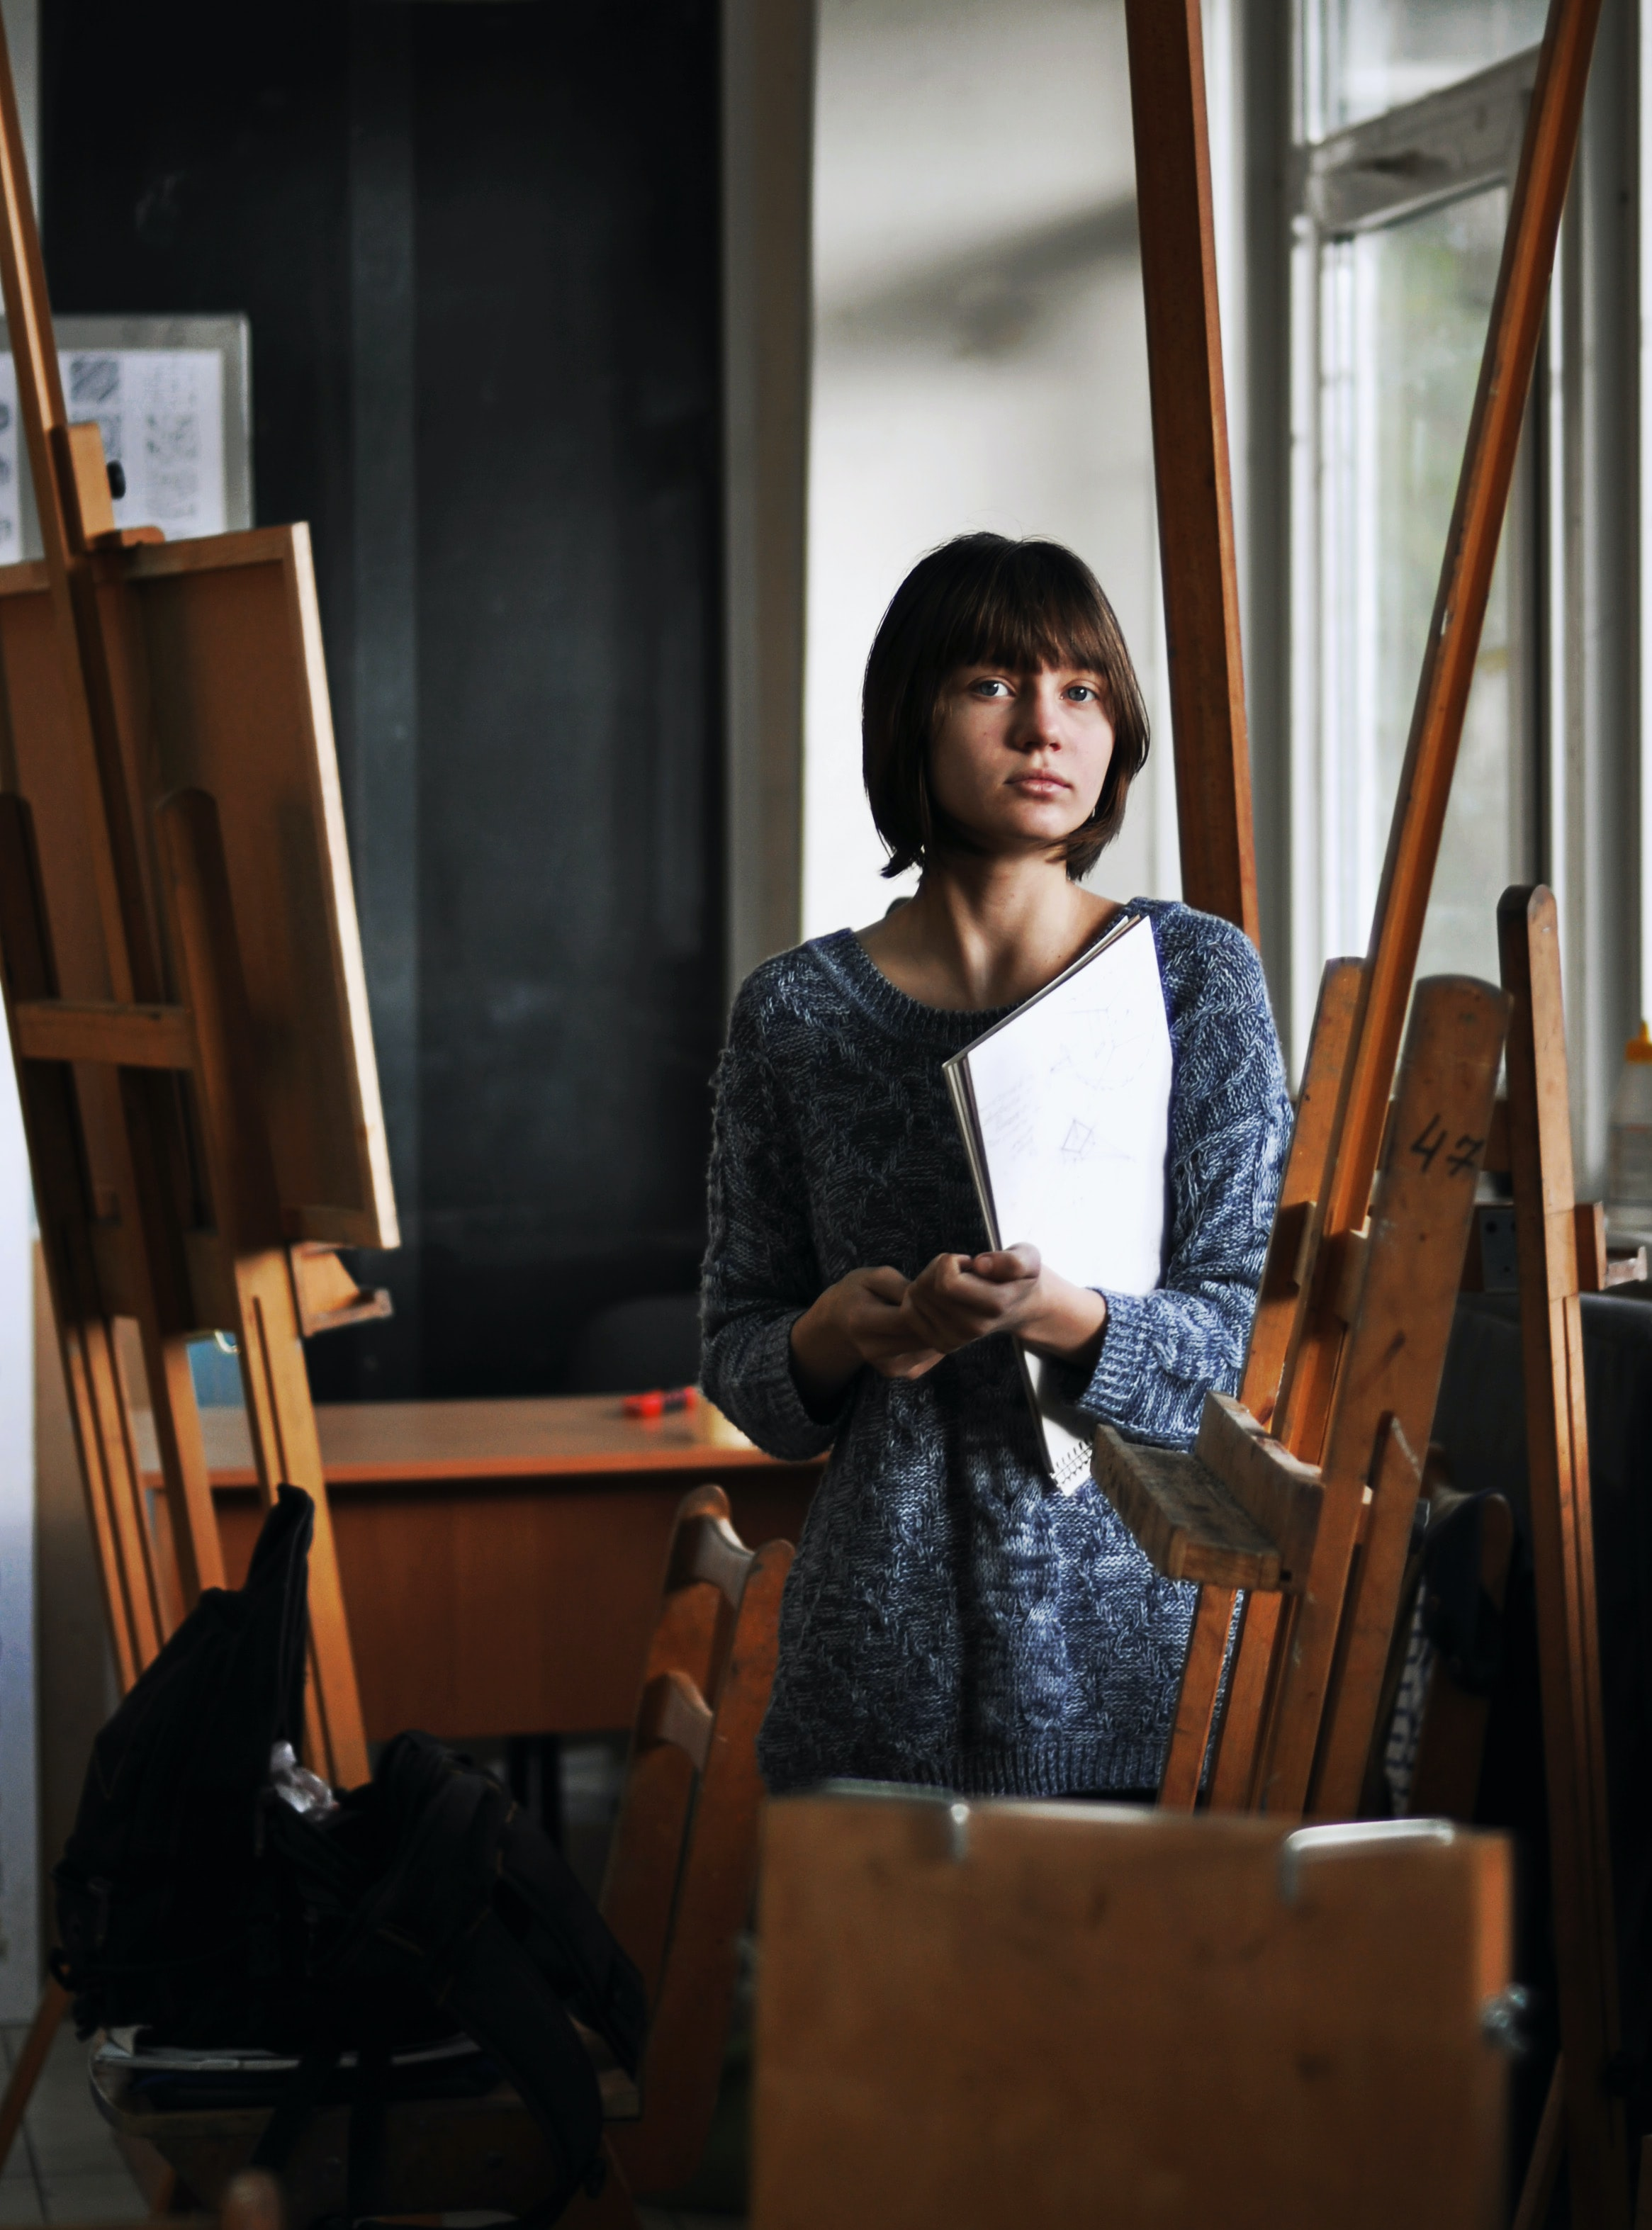 Artist stands alone in her studio with easels